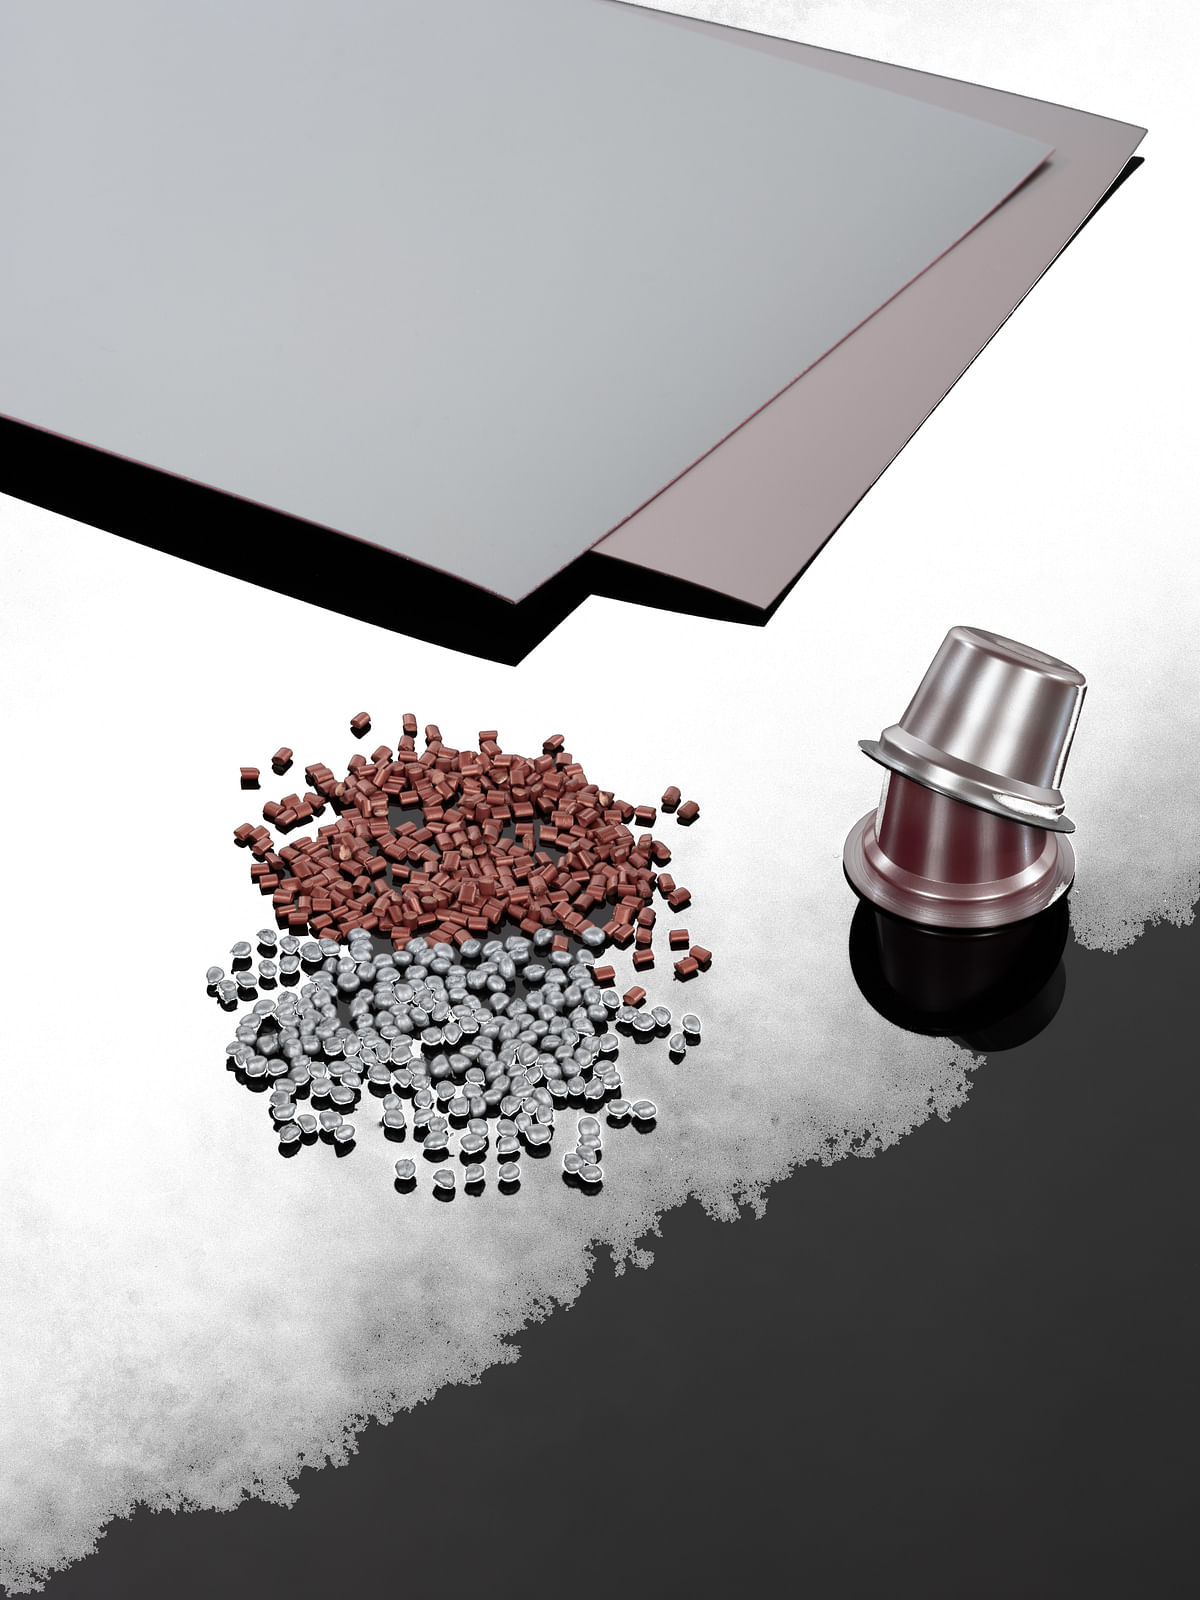 ALMA Packaging (Switzerland) has developed plastic films based on certified renewable polymers from SABIC for a new range of sustainable, aluminum-free coffee capsules.